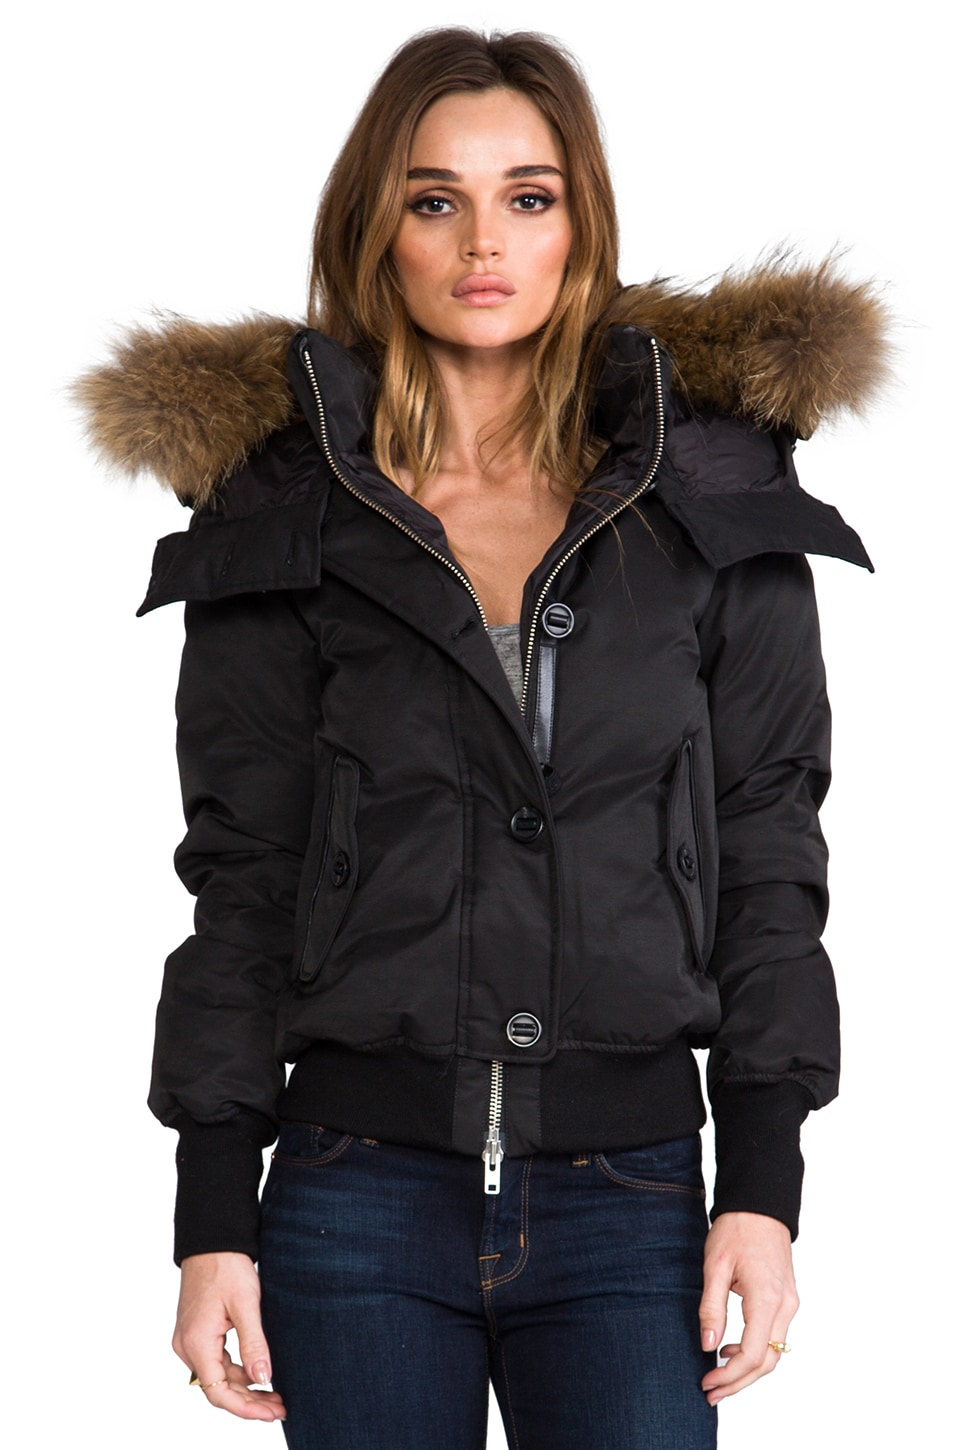 Mackage Valerie Peach Lux Down Jacket in Black